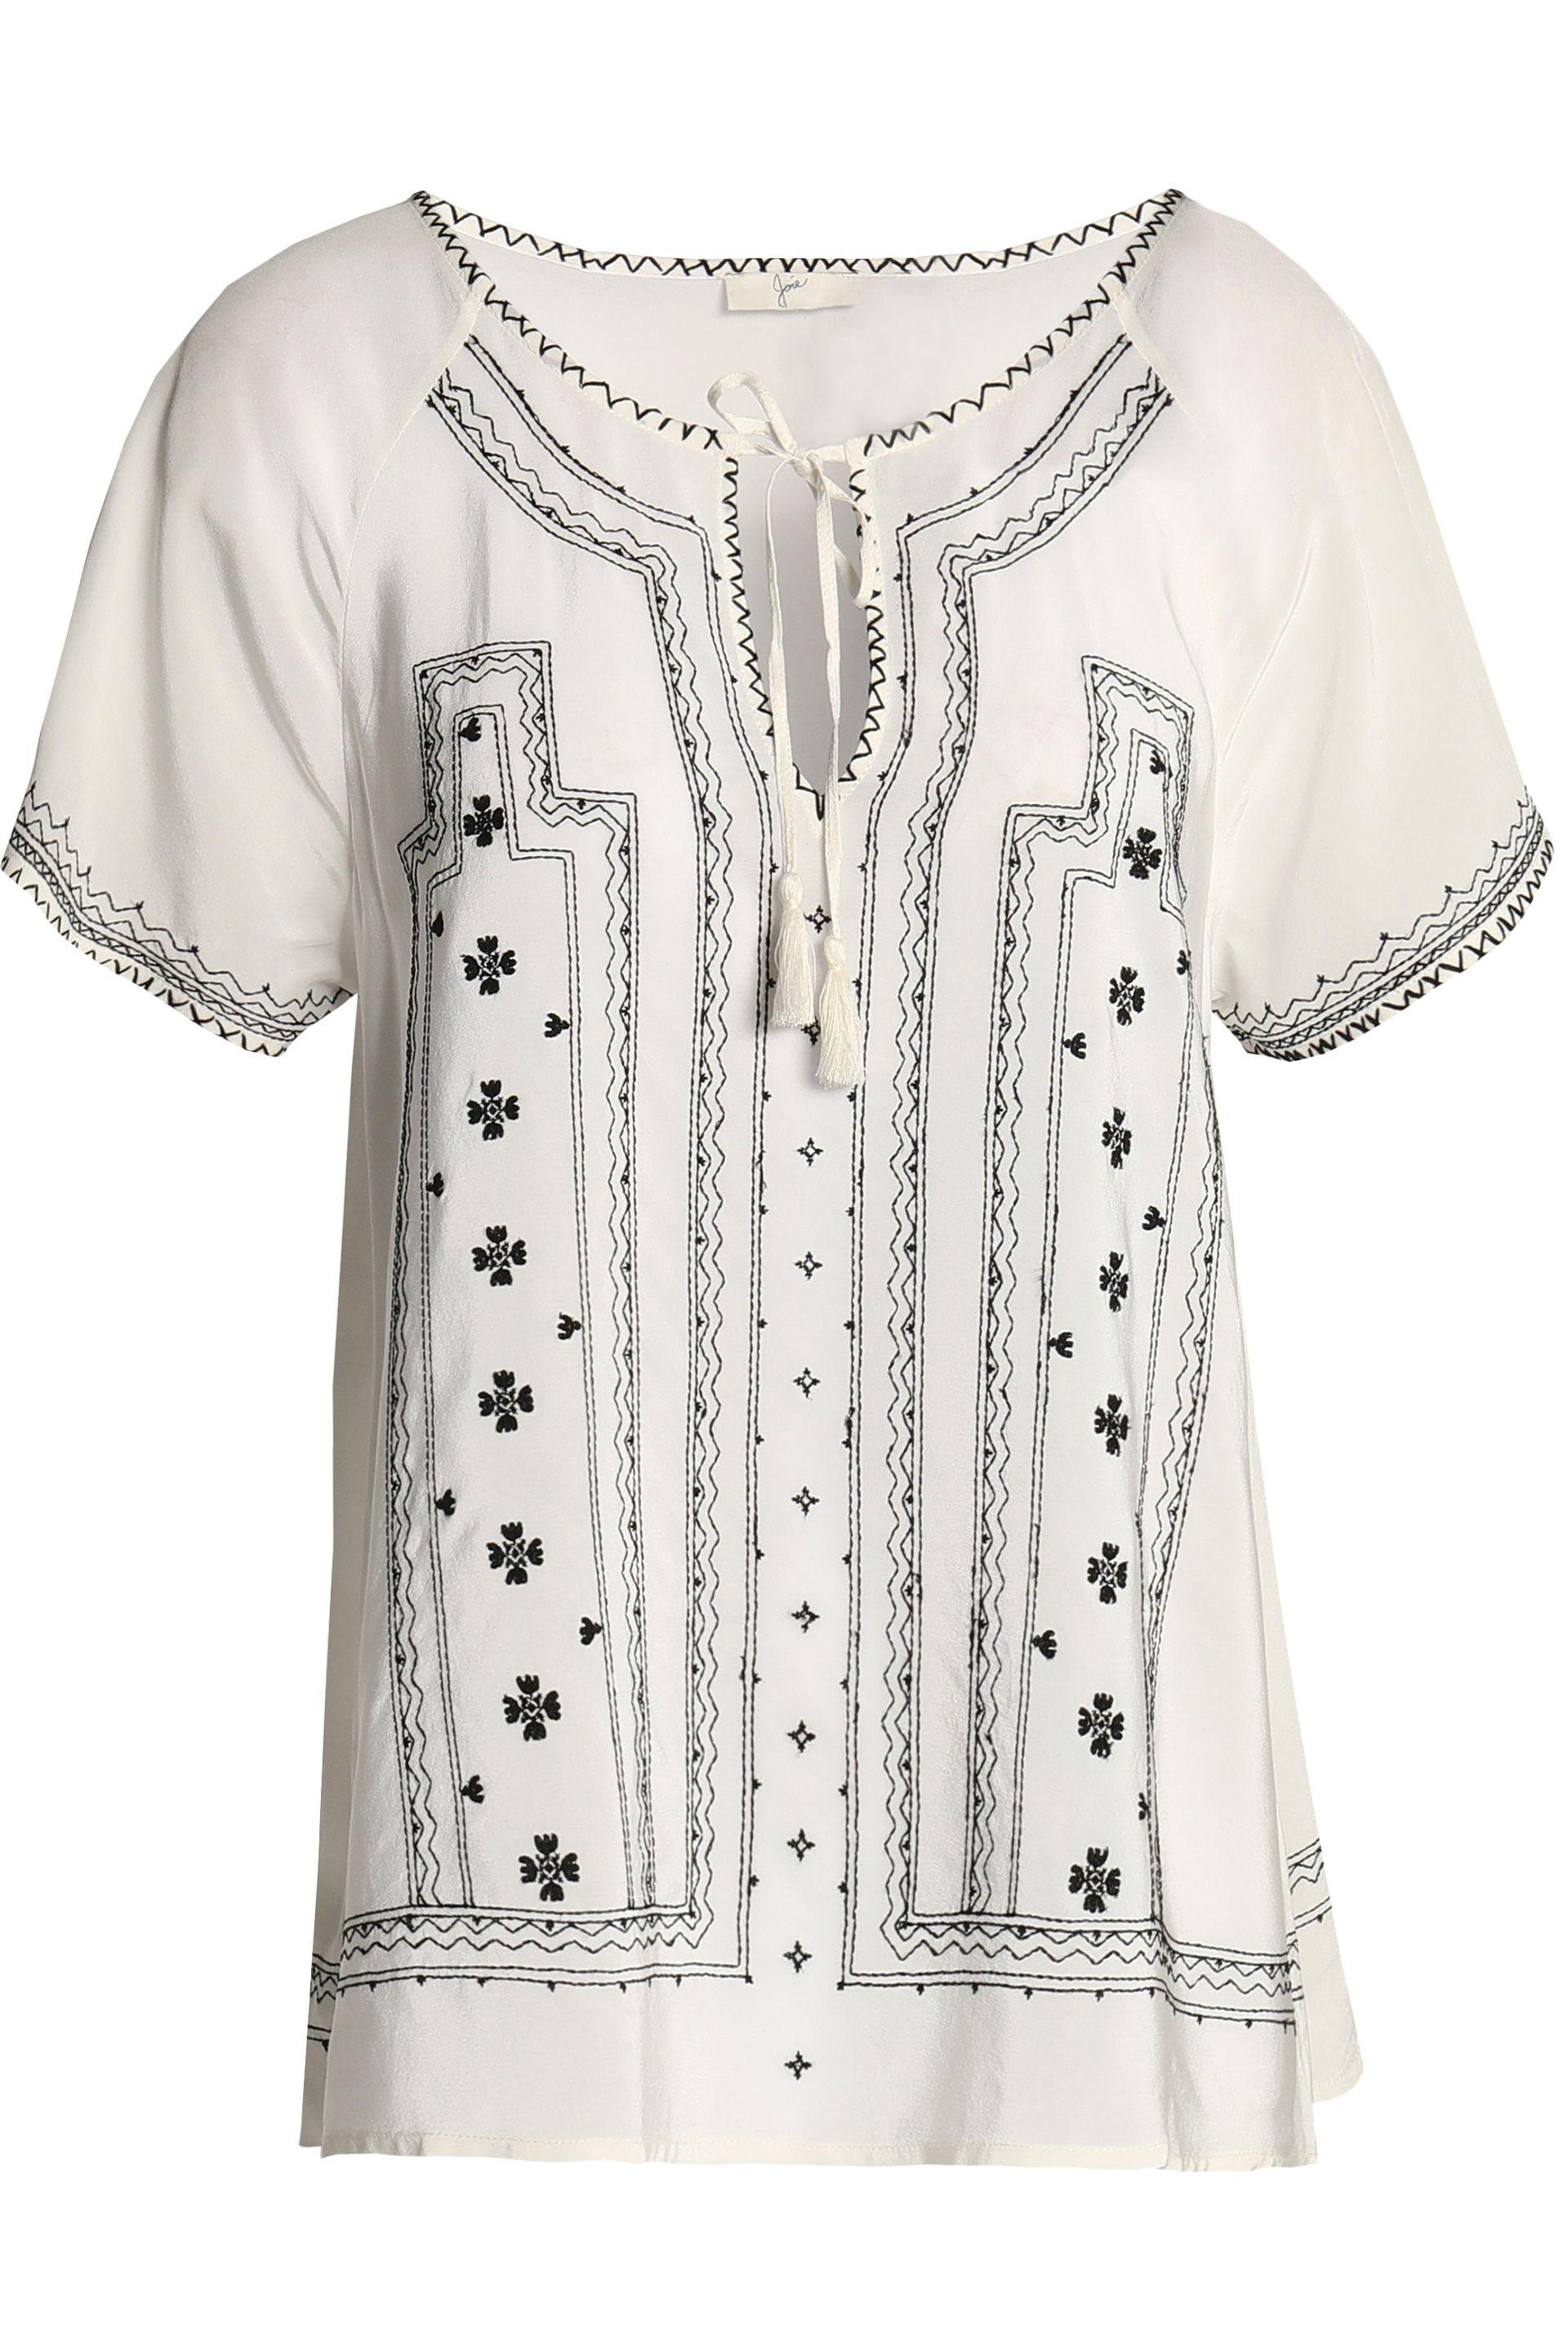 Joie Woman Tasseled Embroidered Silk Crepe De Chine Blouse White Size L Joie Clearance Authentic Reliable Online Buy Cheap Best Wholesale C3c3iv3Has